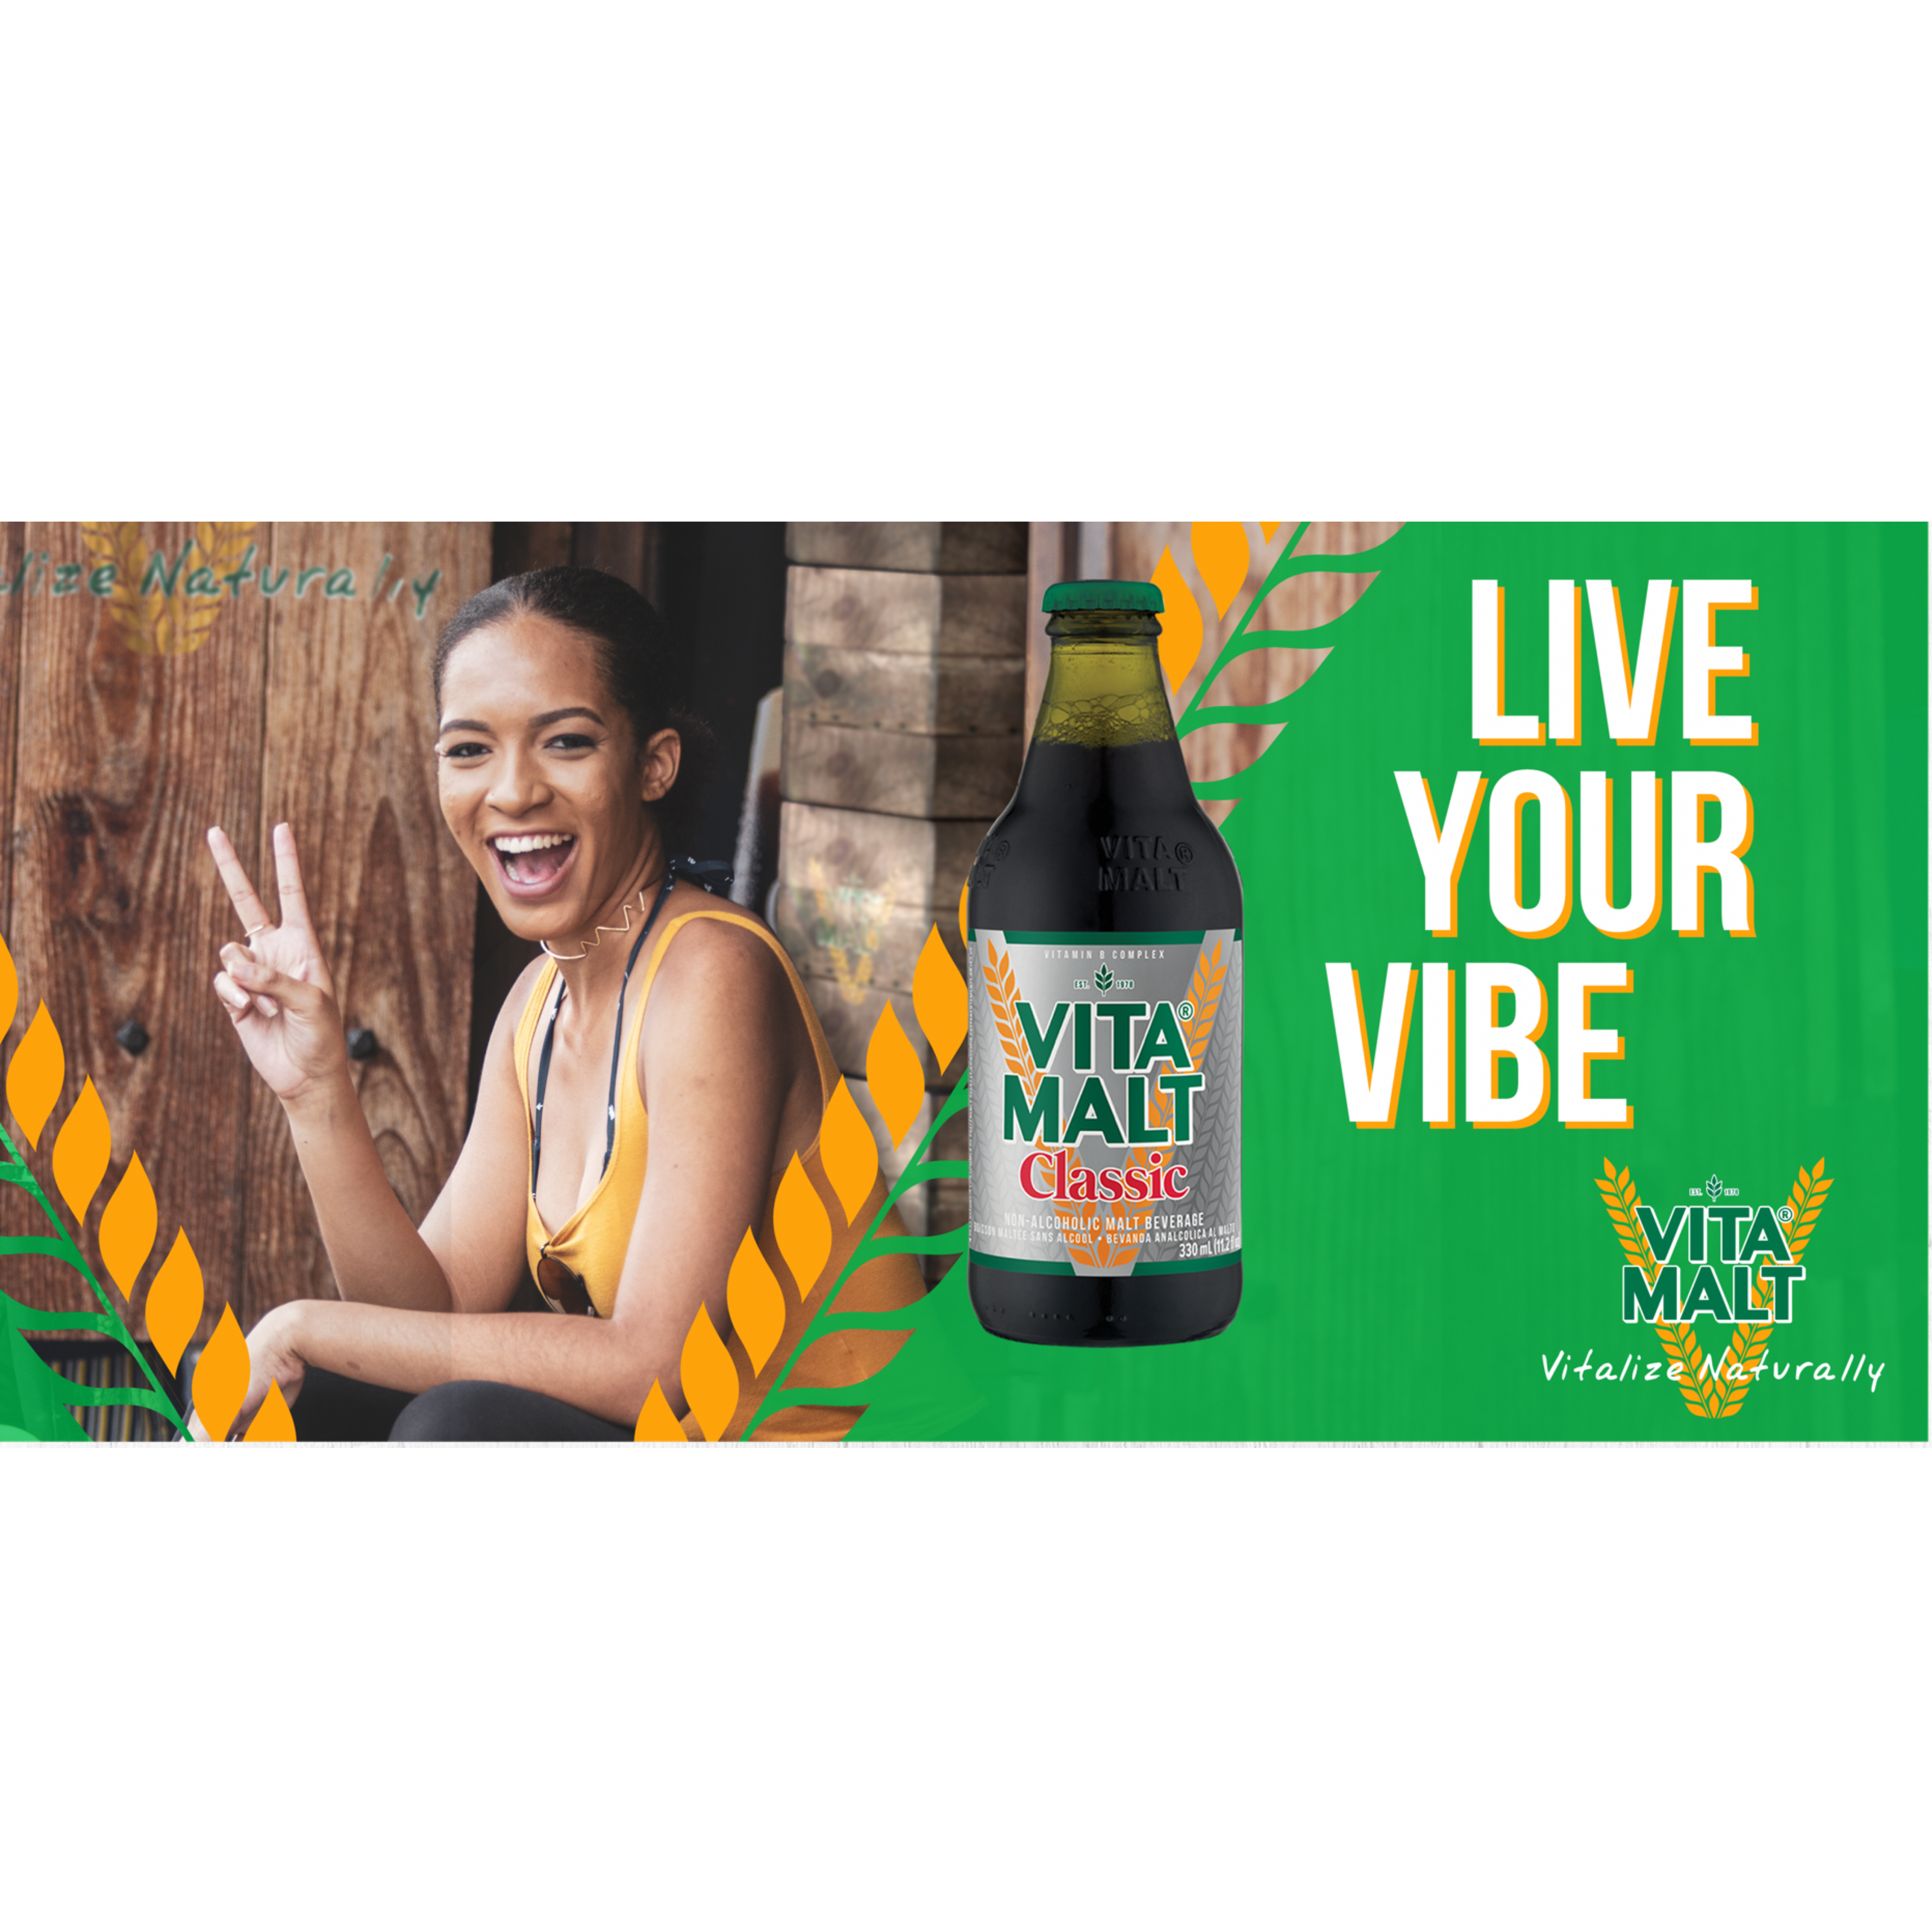 Live Your Vibe